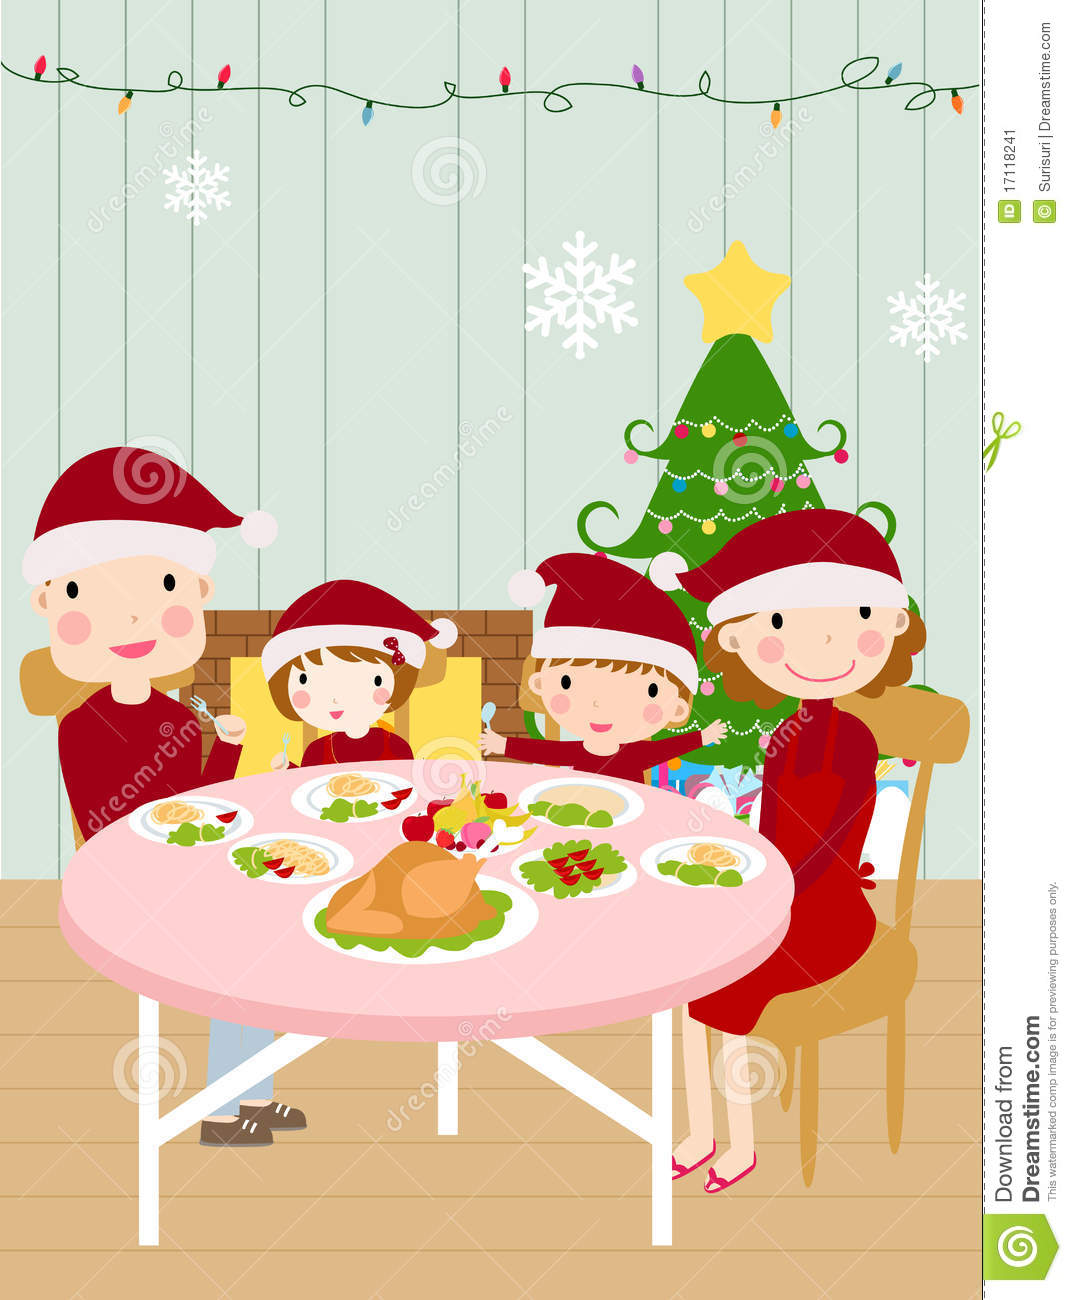 clipart christmas dinner pictures - photo #25